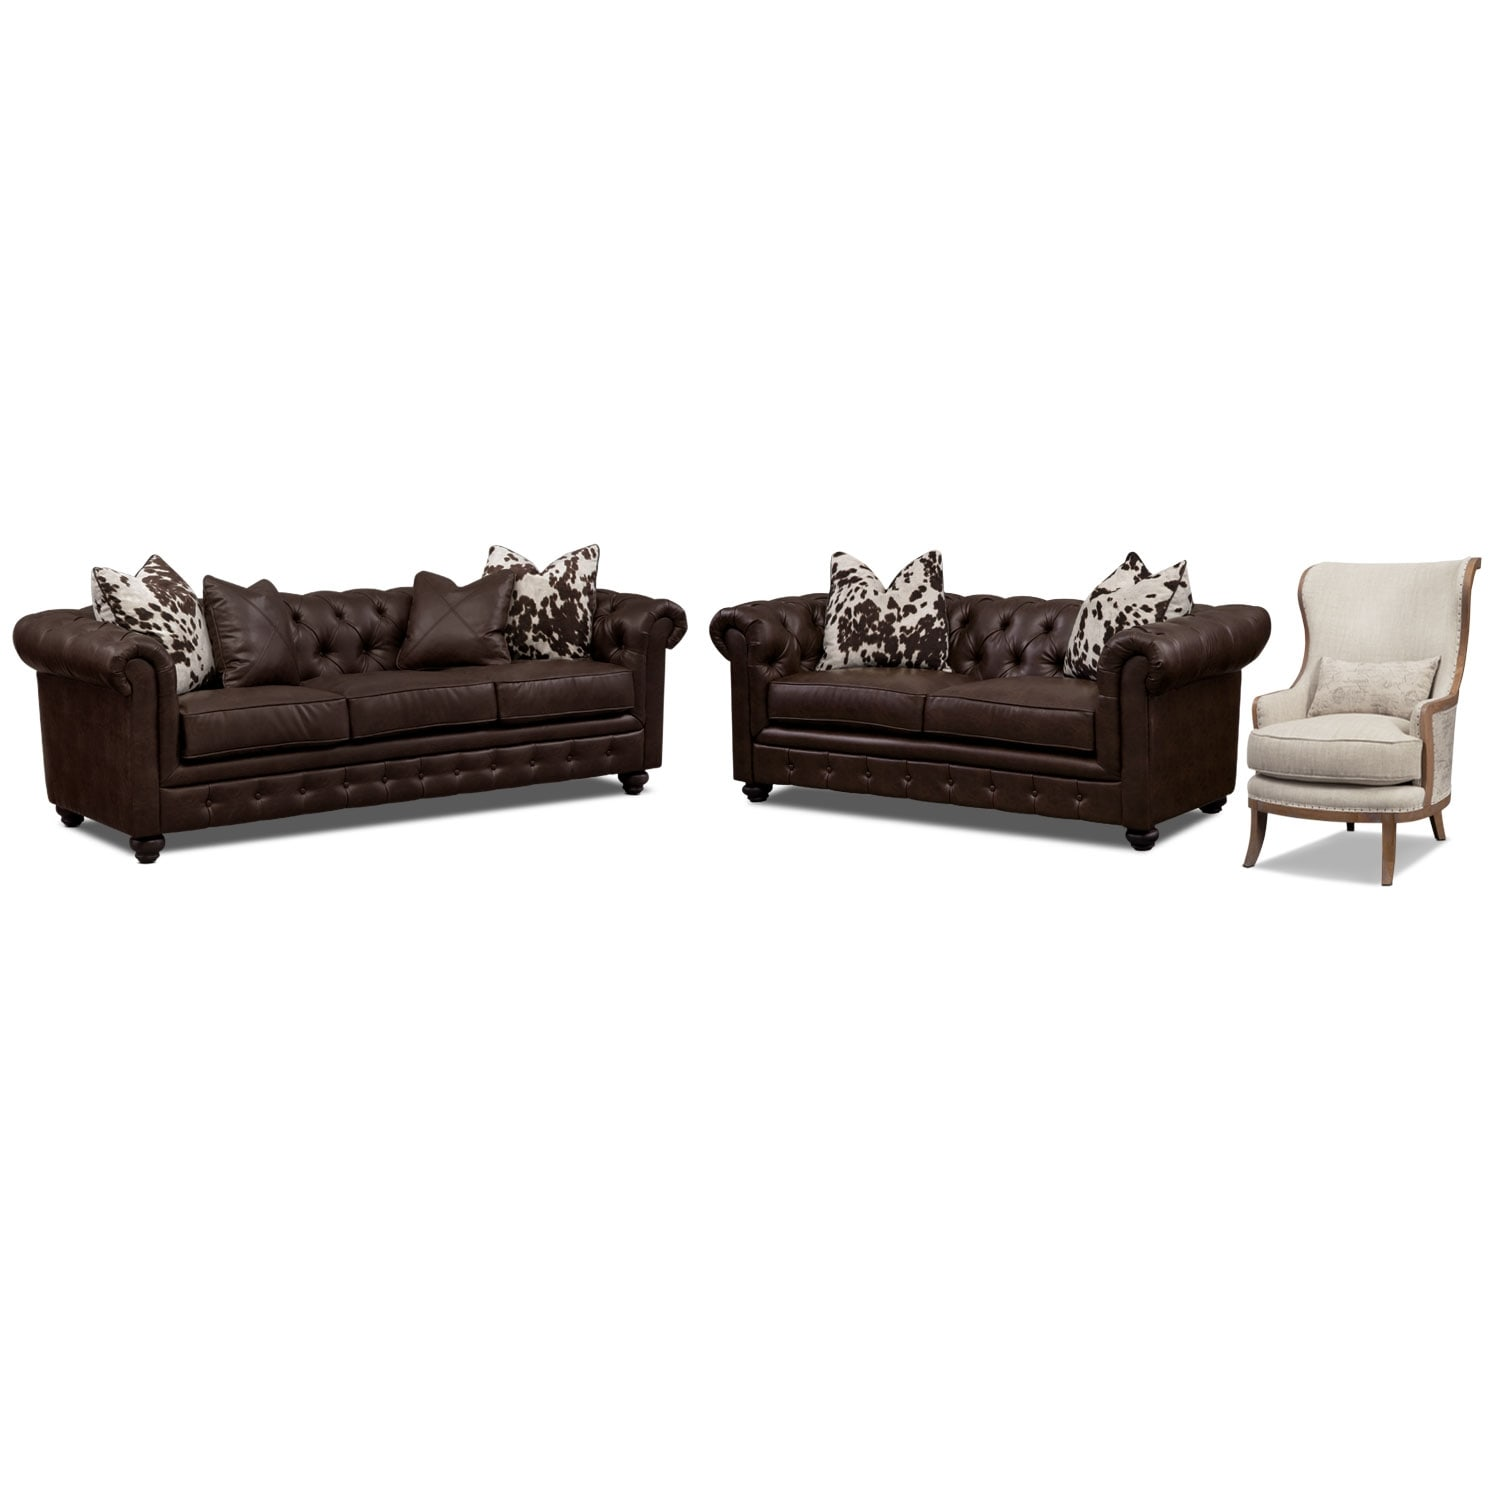 Living Room Furniture - Madeline Sofa, Apartment Sofa and Accent Chair Set - Chocolate